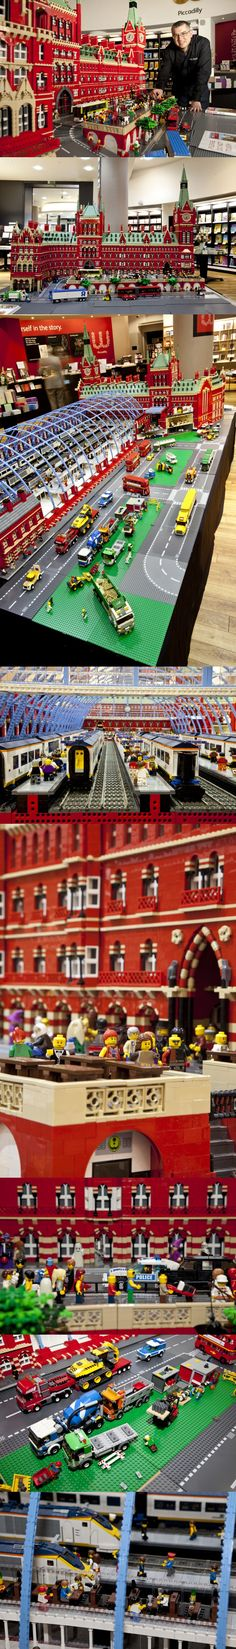 Incredible LEGO St Pancras International Station - Pinned by… Lego City, Van Lego, Lego Lego, Construction Lego, Lego Sculptures, Lego Boards, Amazing Lego Creations, Lego Station, Train Station